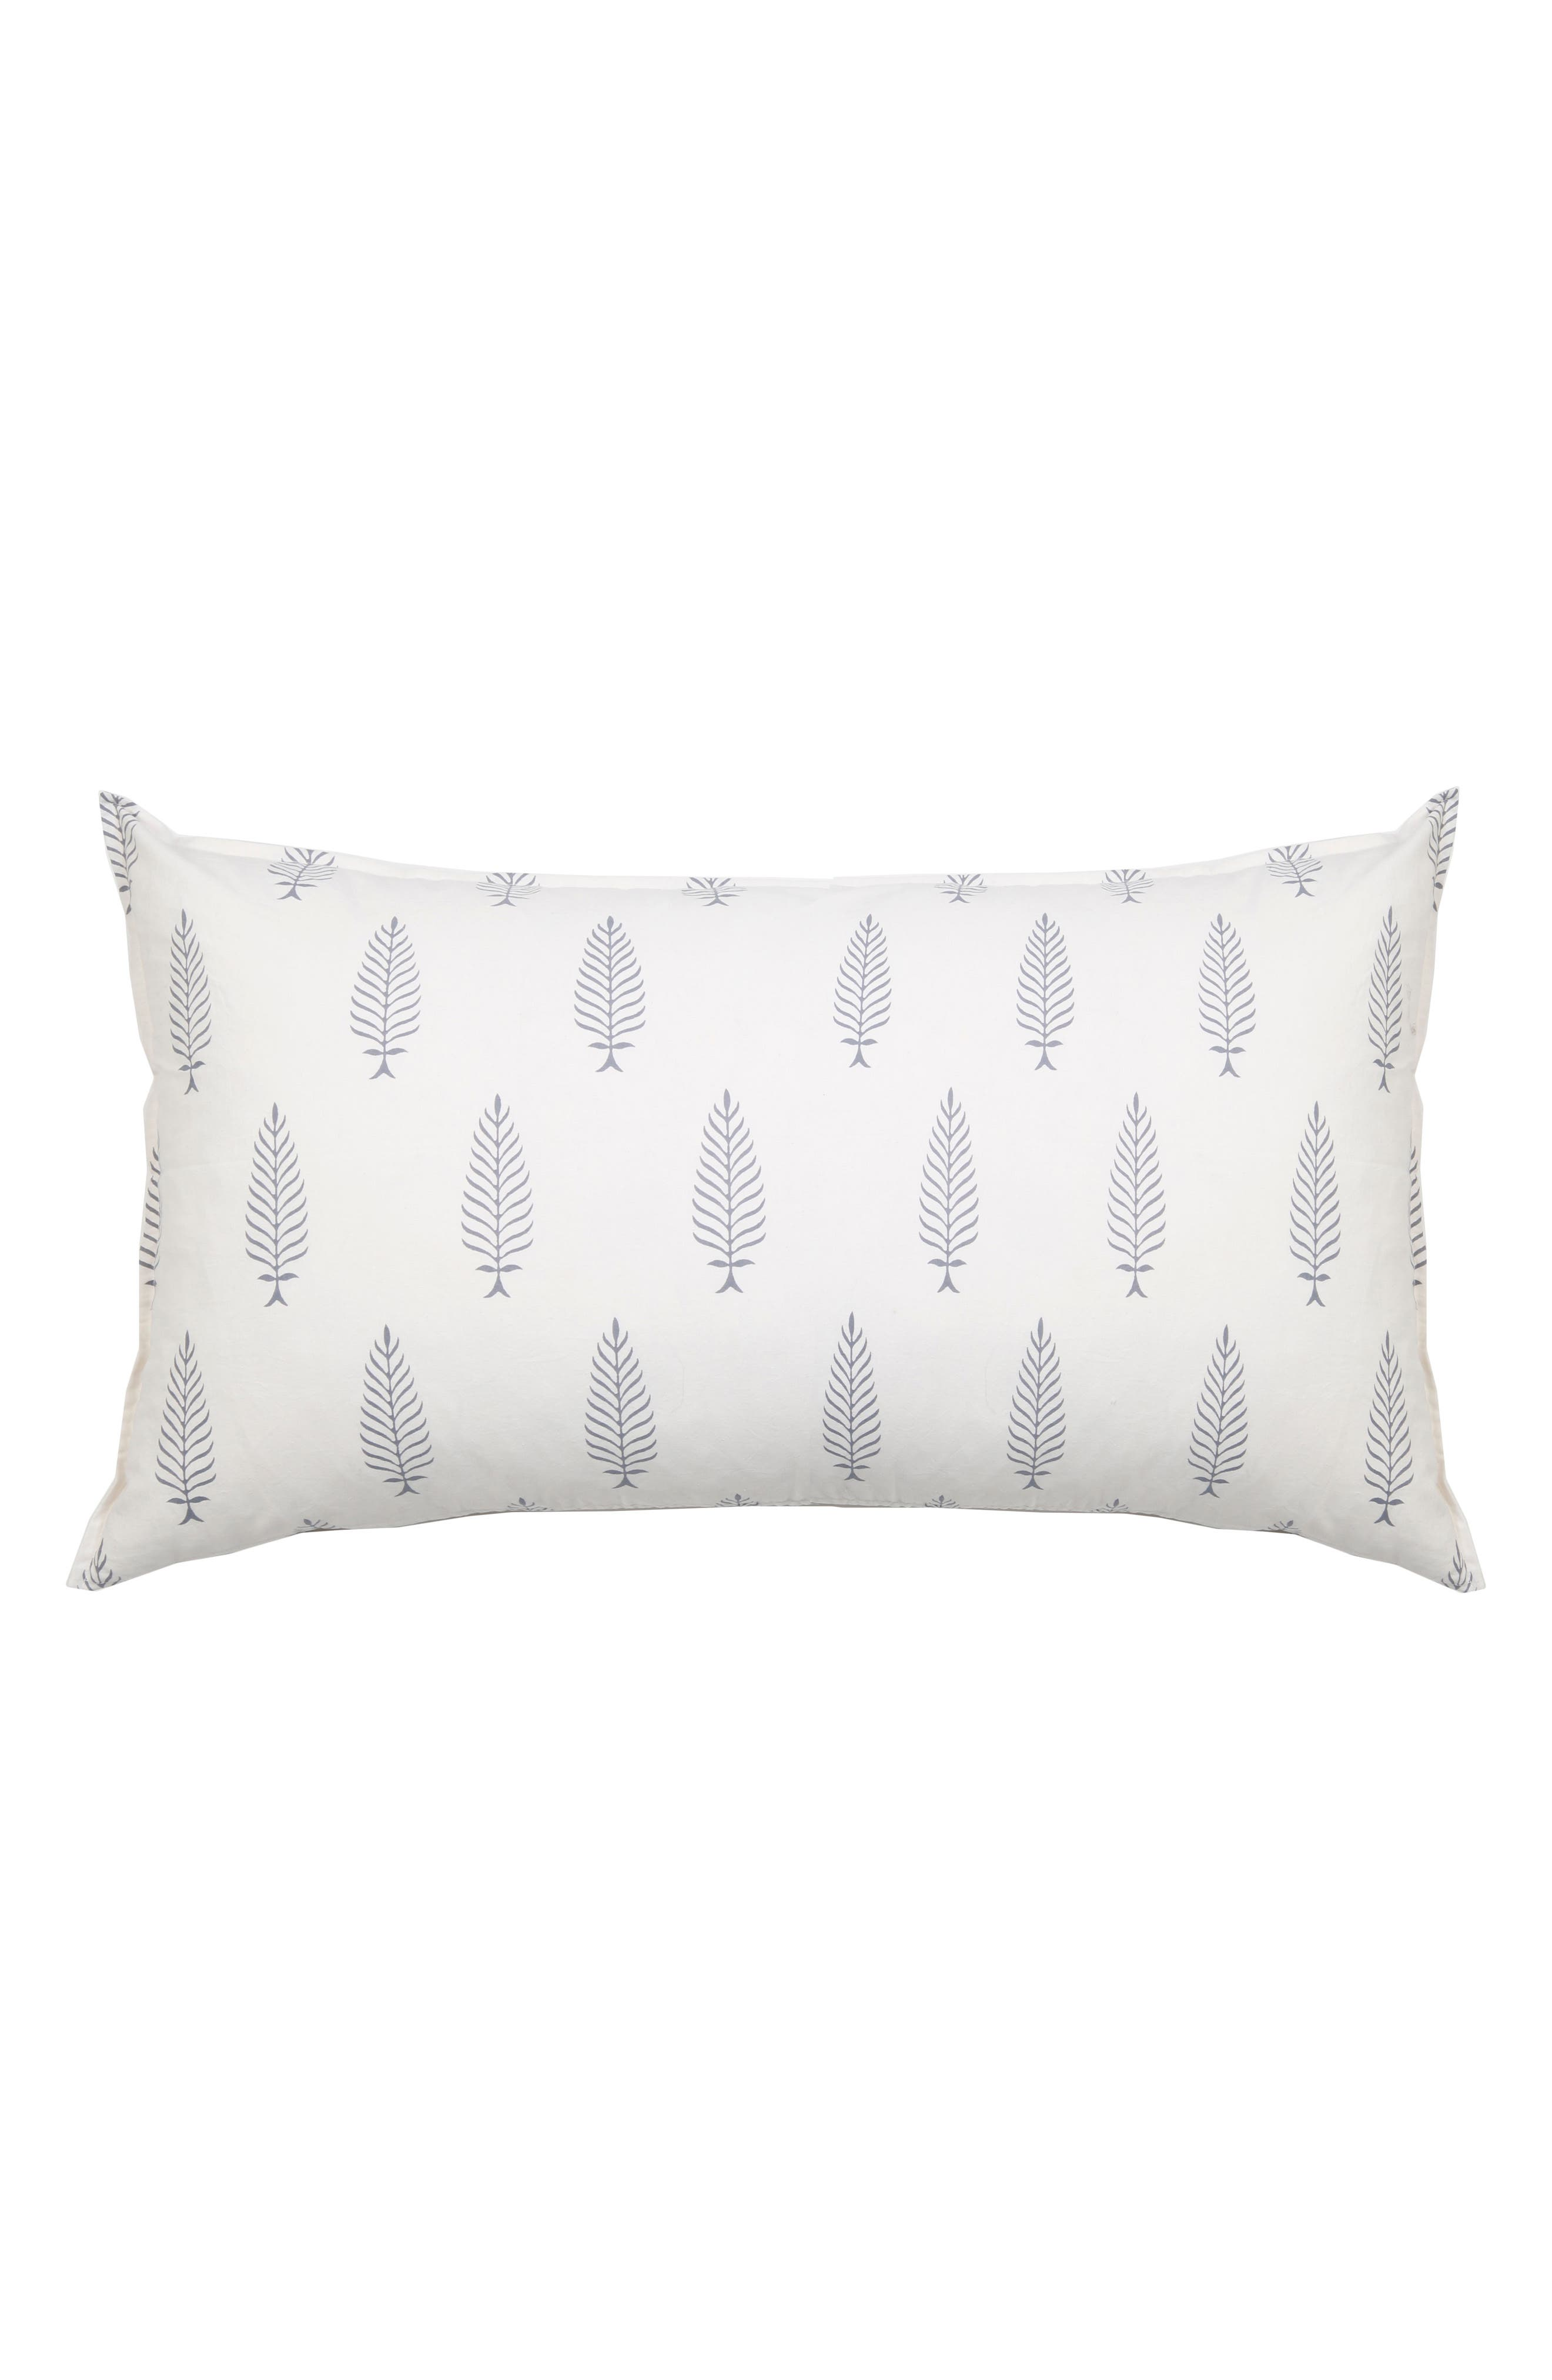 Main Image - Pom Pom at Home Kiara Accent Pillow